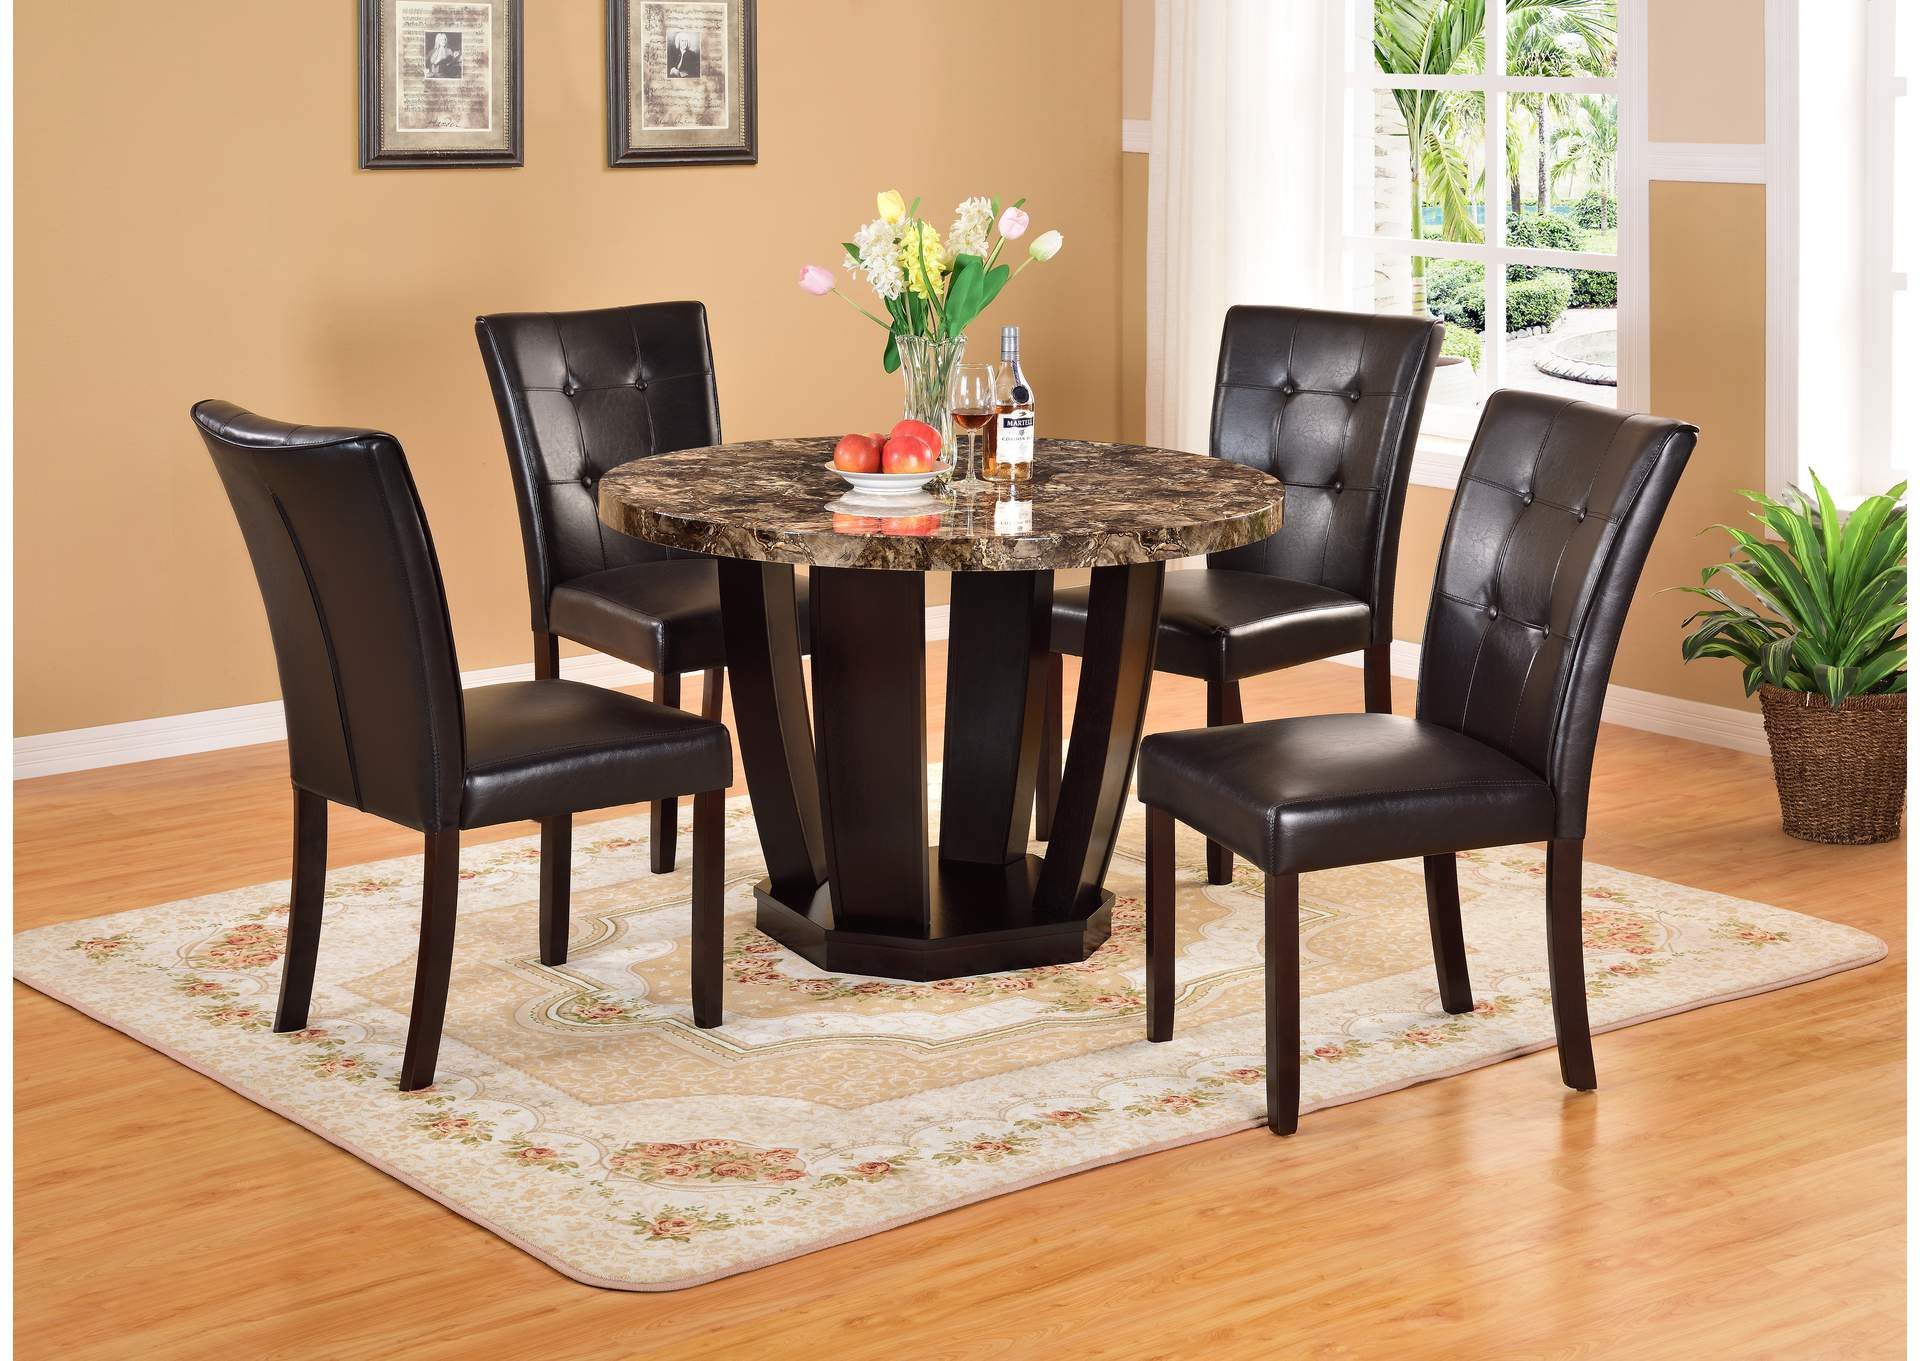 black parsons chair wood and metal chairs roses flooring furniture set of 2 global trading